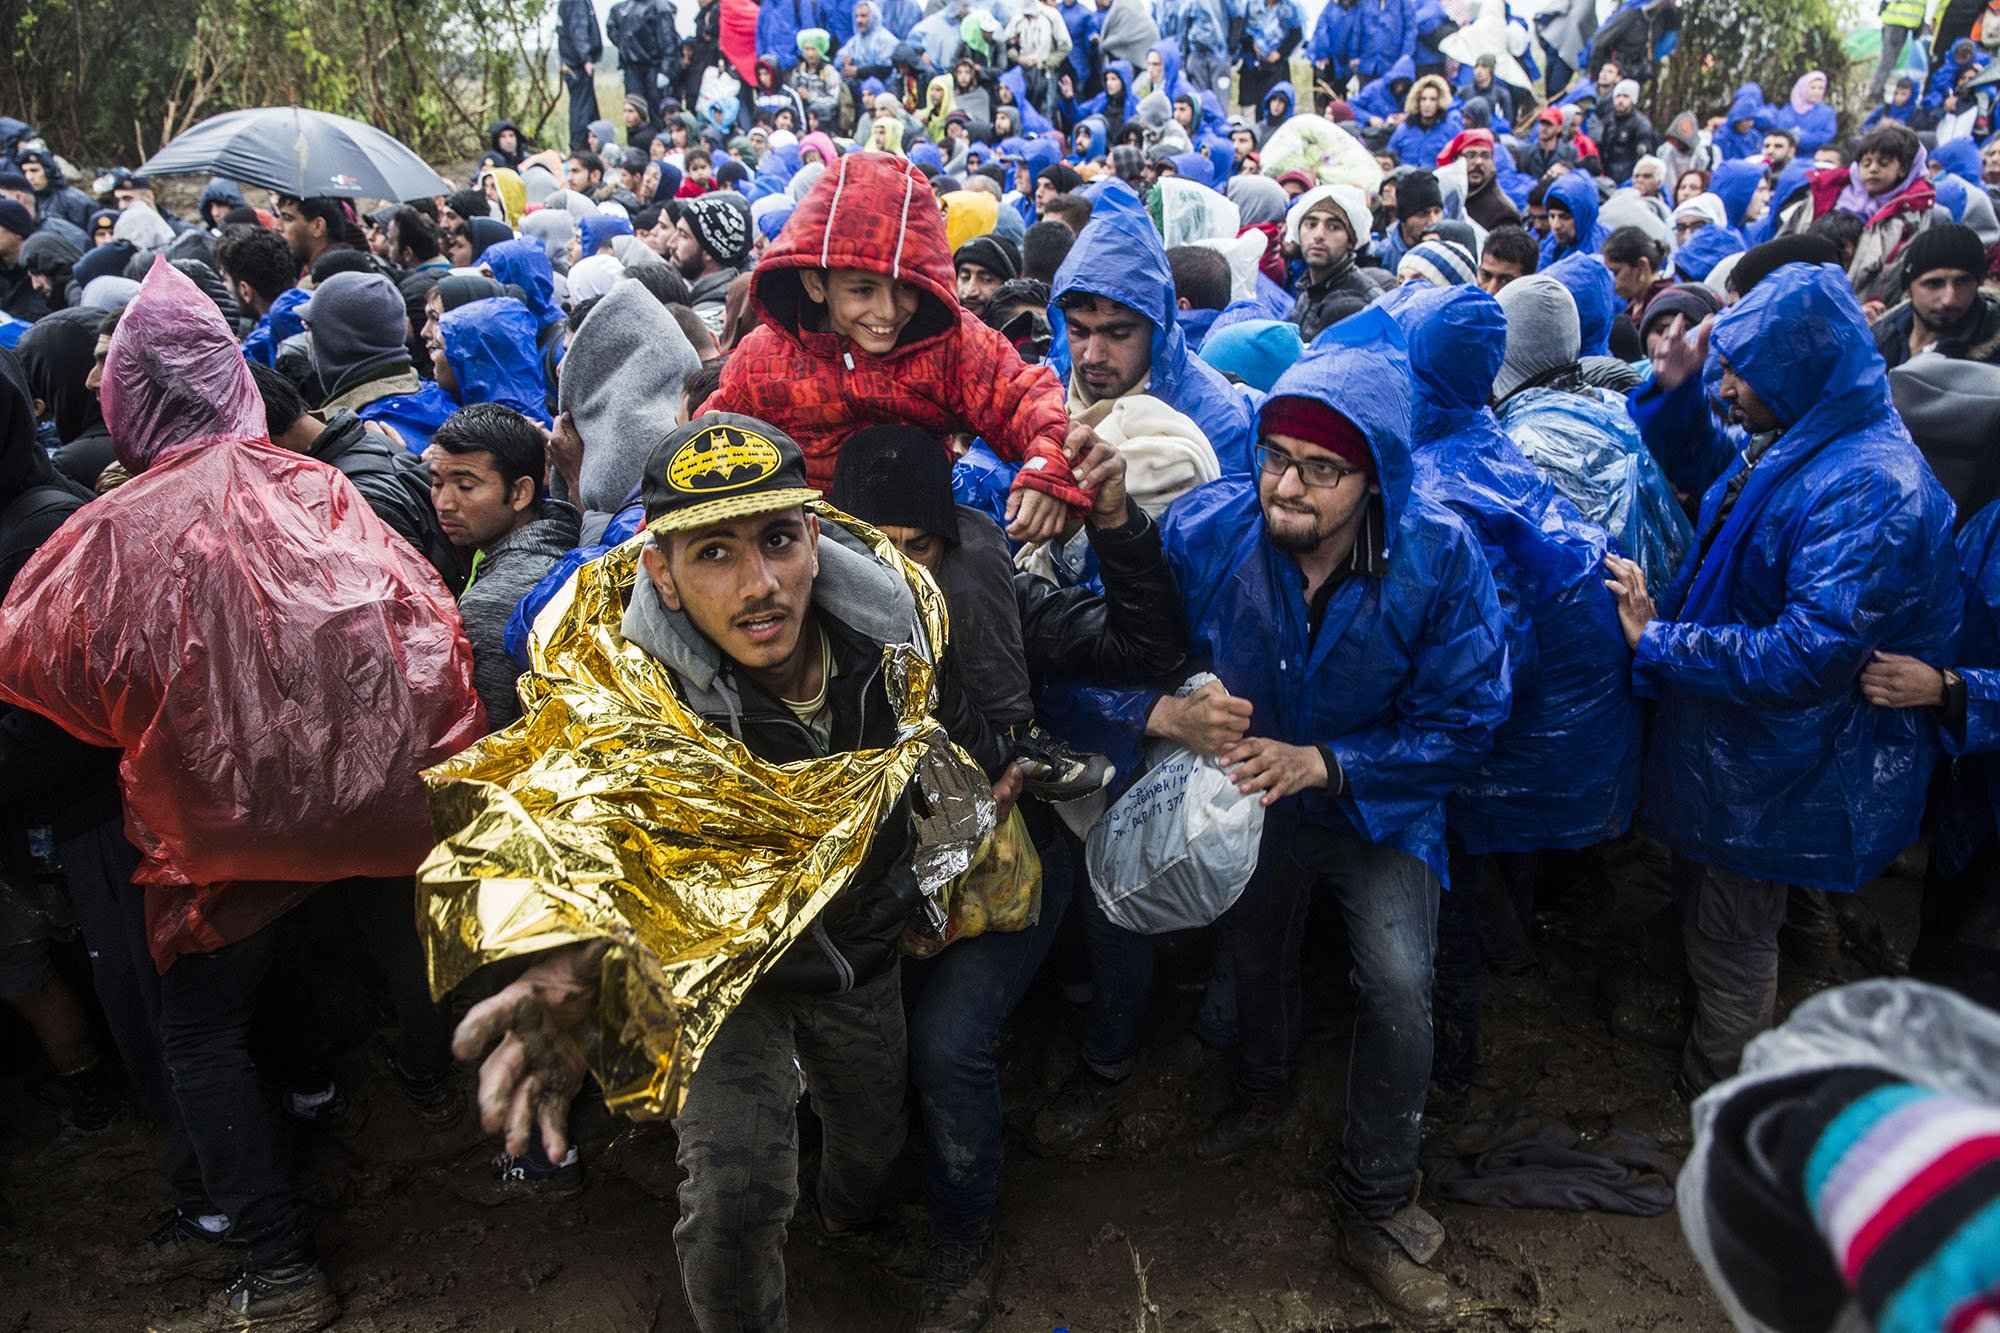 Around 3,000 refugees were stranded in the border between Serbia and Croatia on October 19, waiting in a transit area with poor living conditions and under the rain. They could finally proceed to Croatia after the police opened the border. Photo: Anna Surinyach